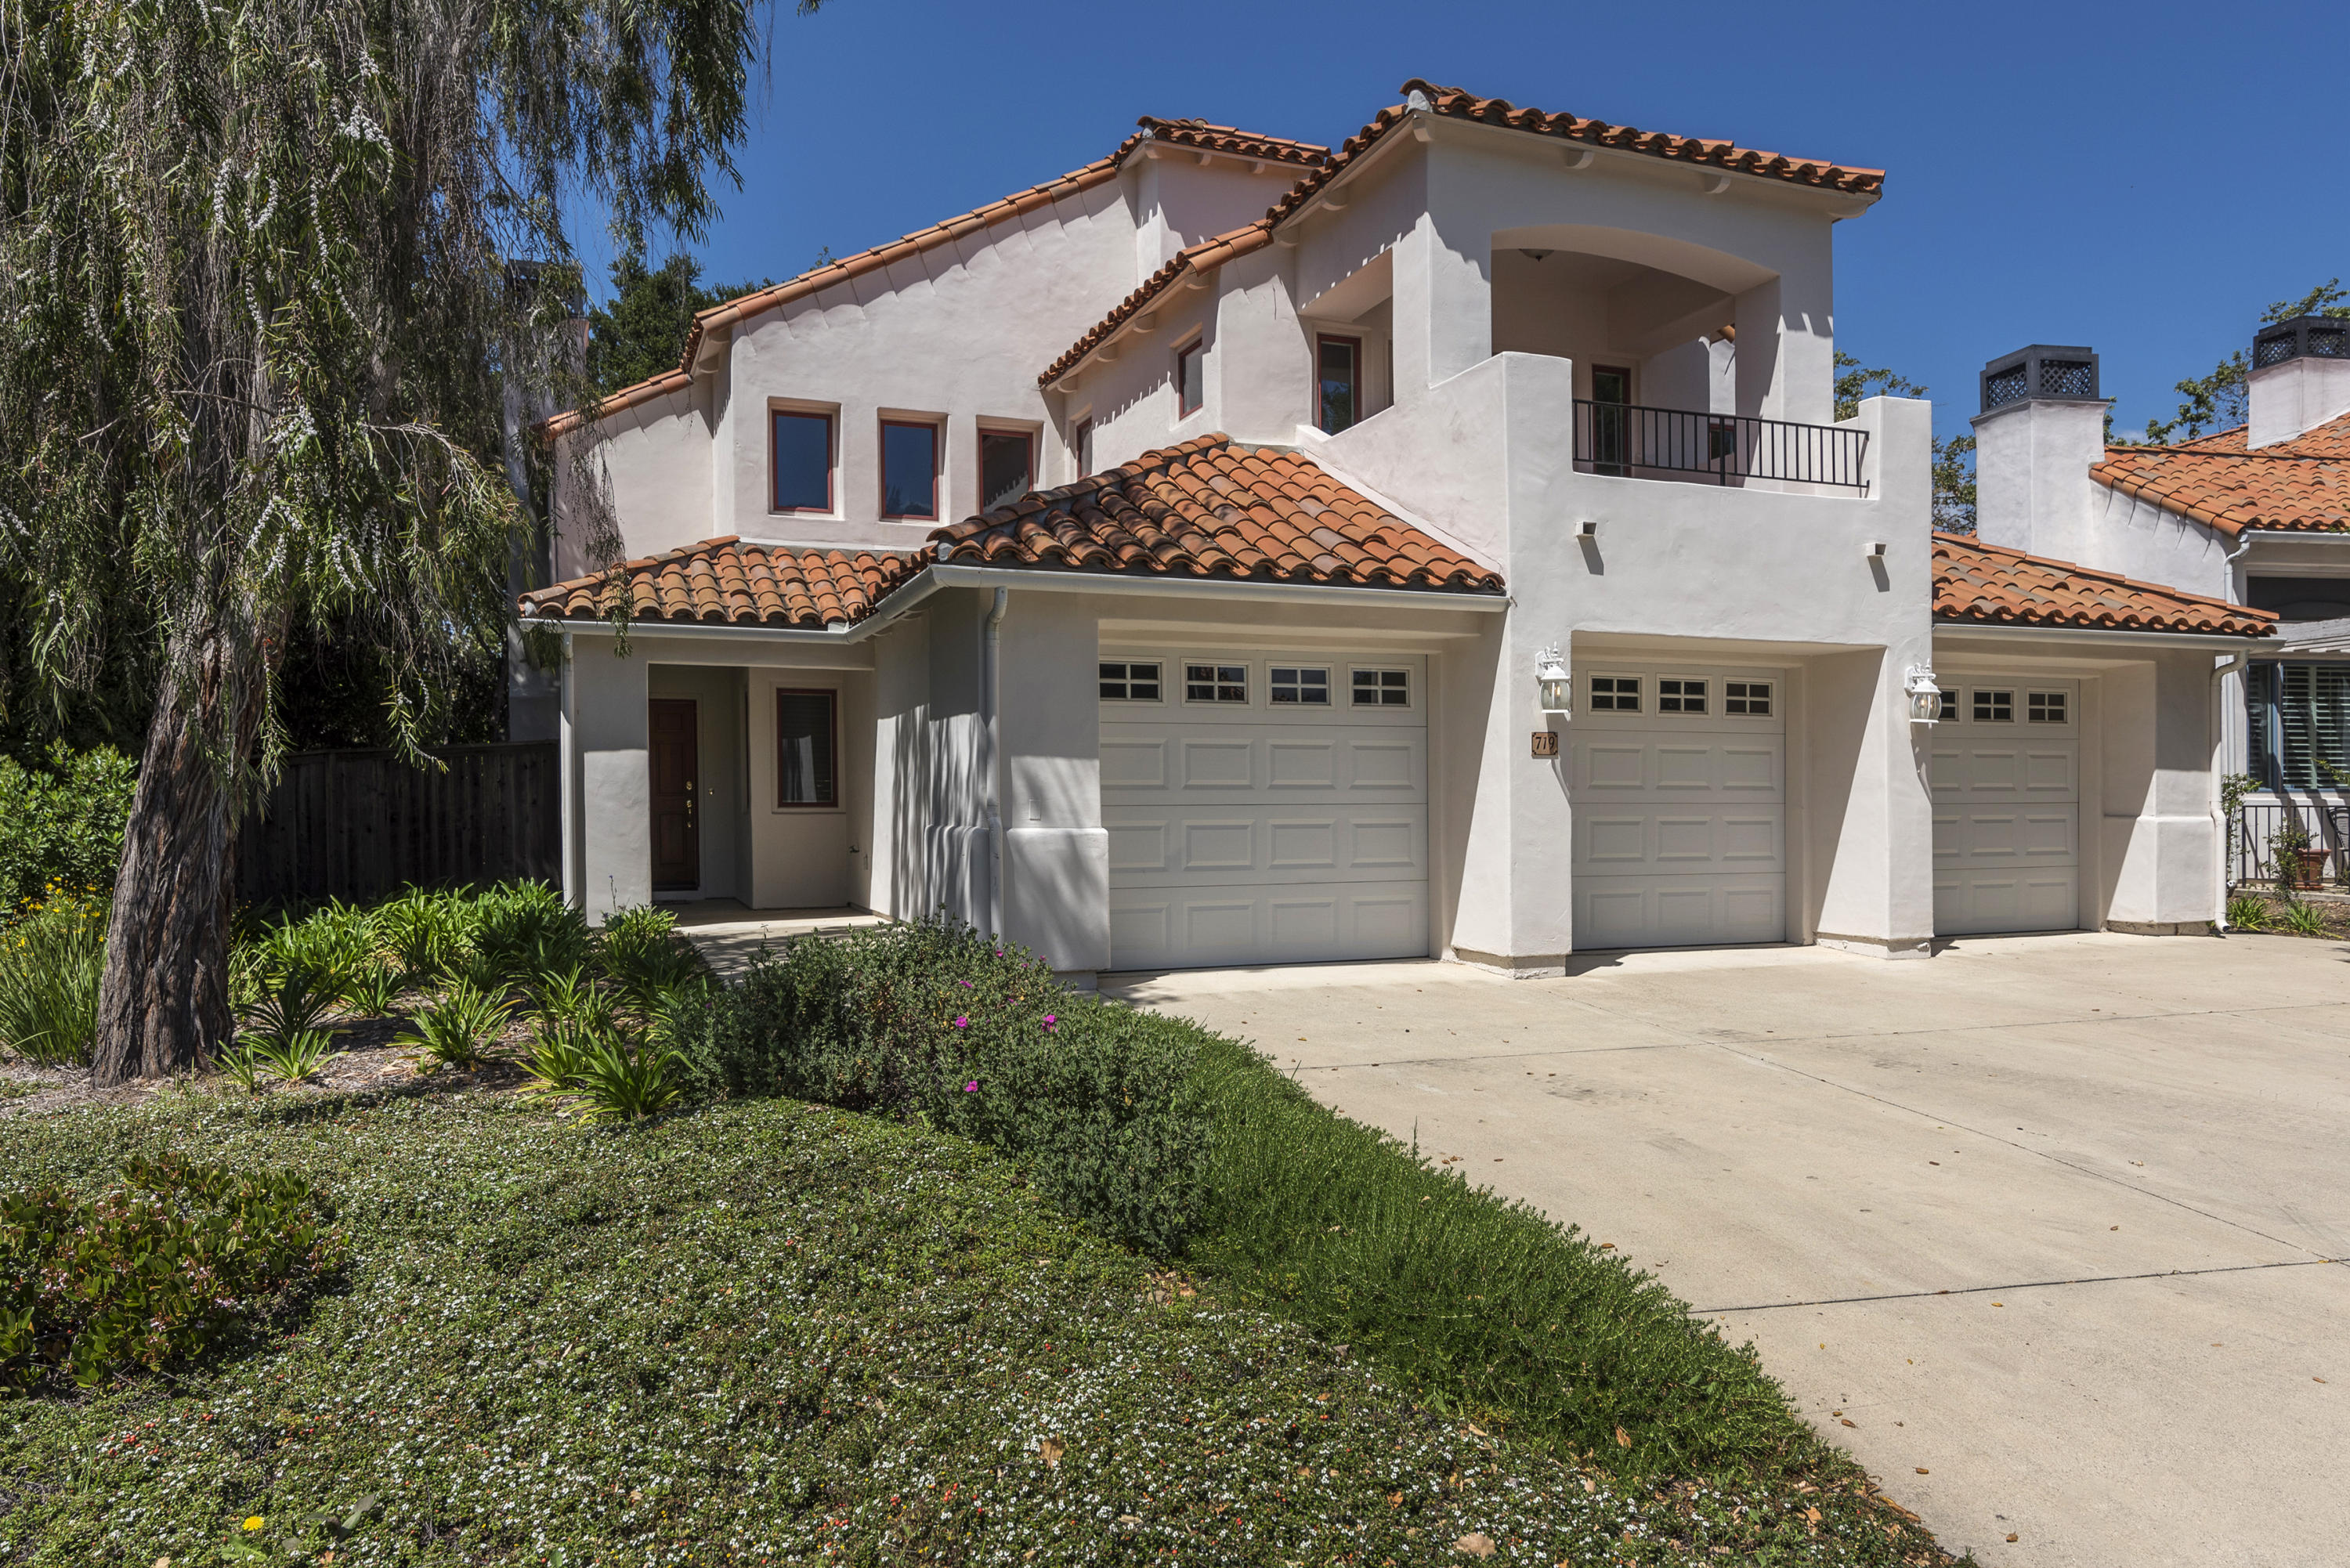 Property photo for 719 Cathedral Pointe Ln Santa Barbara, California 93111 - 17-1330